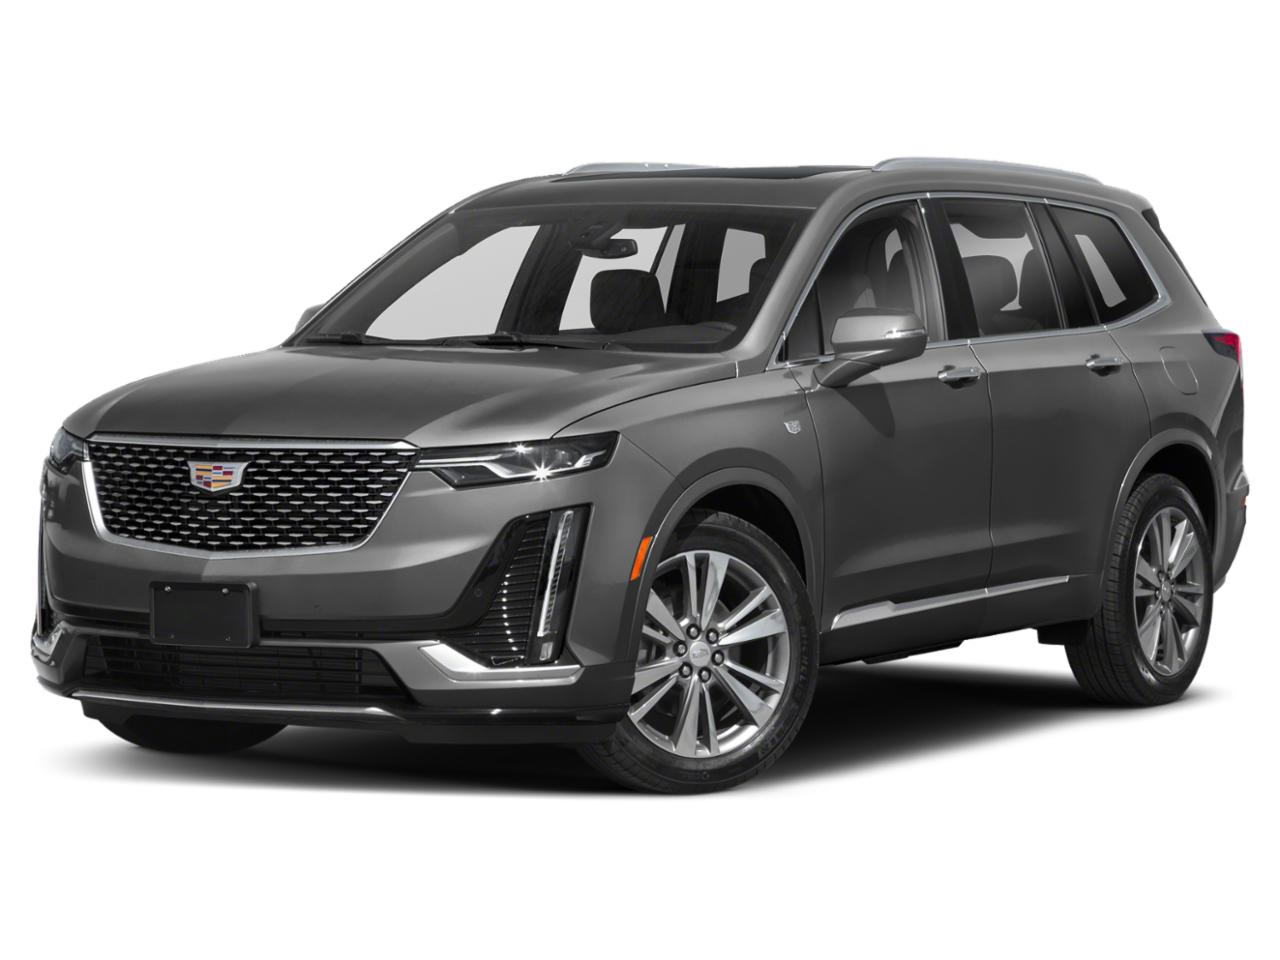 2021 Cadillac XT6 Vehicle Photo in Grapevine, TX 76051